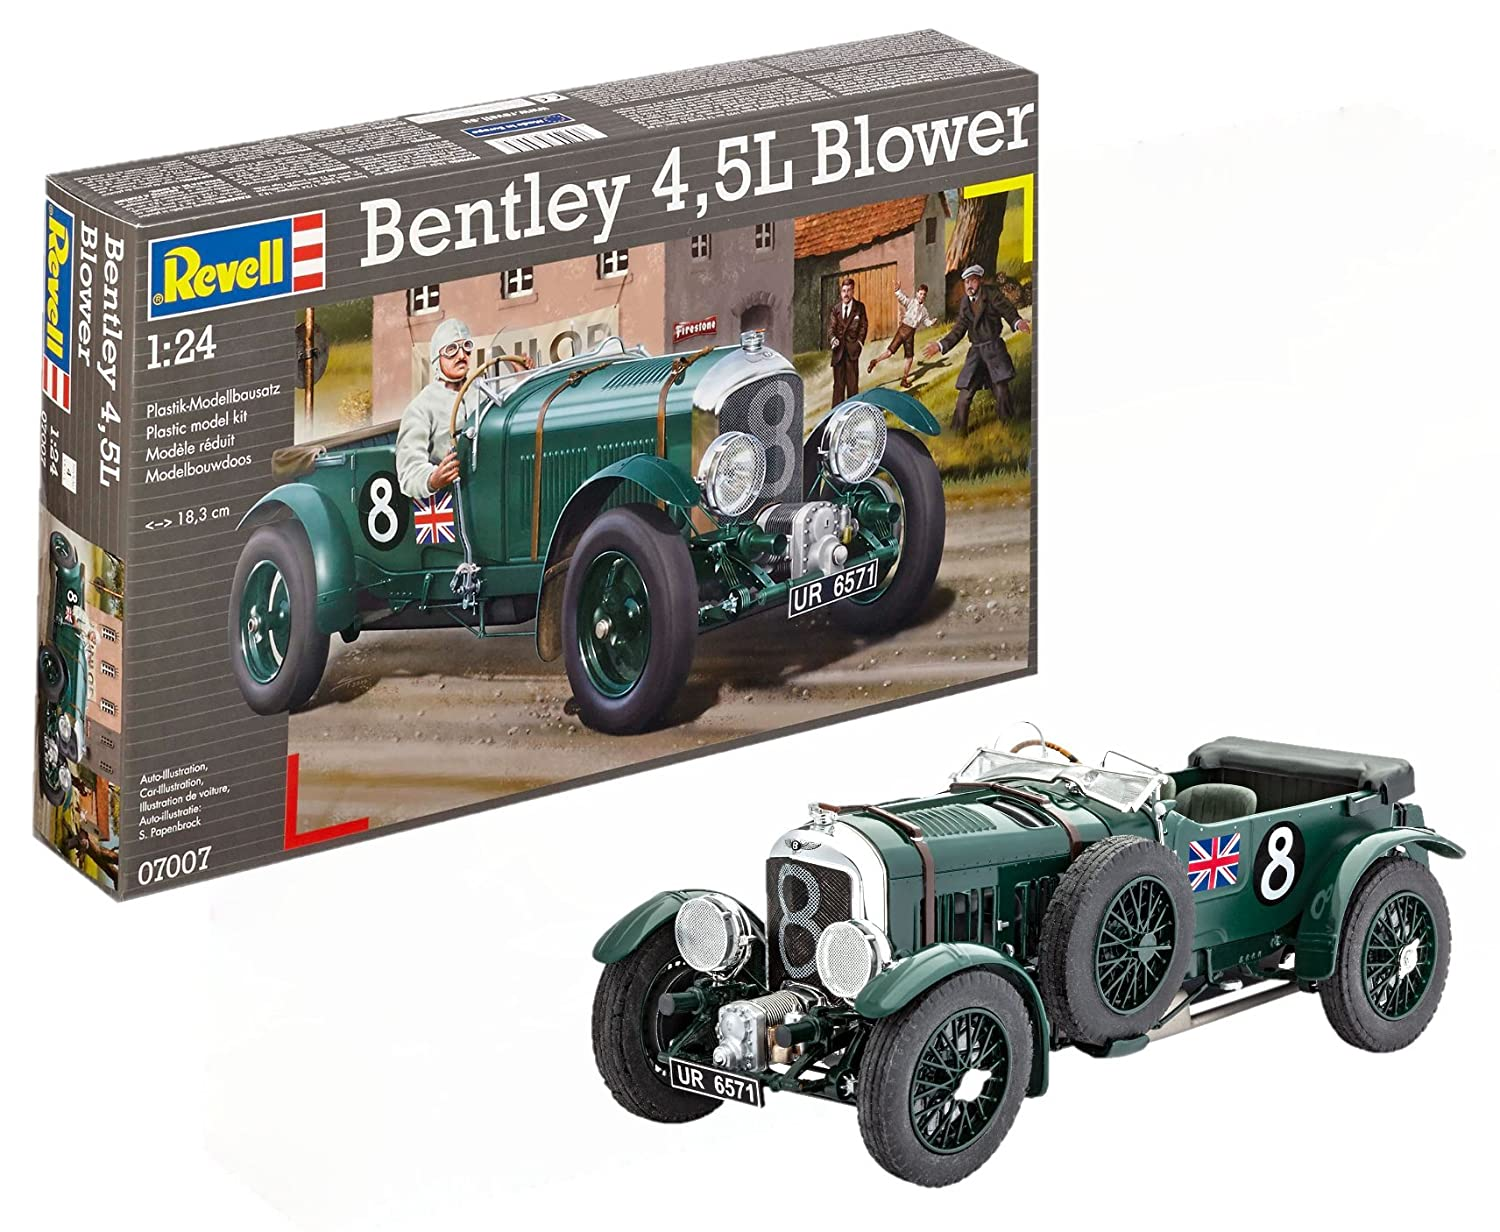 Revell 1:24 - Bentley 4.5L Blower